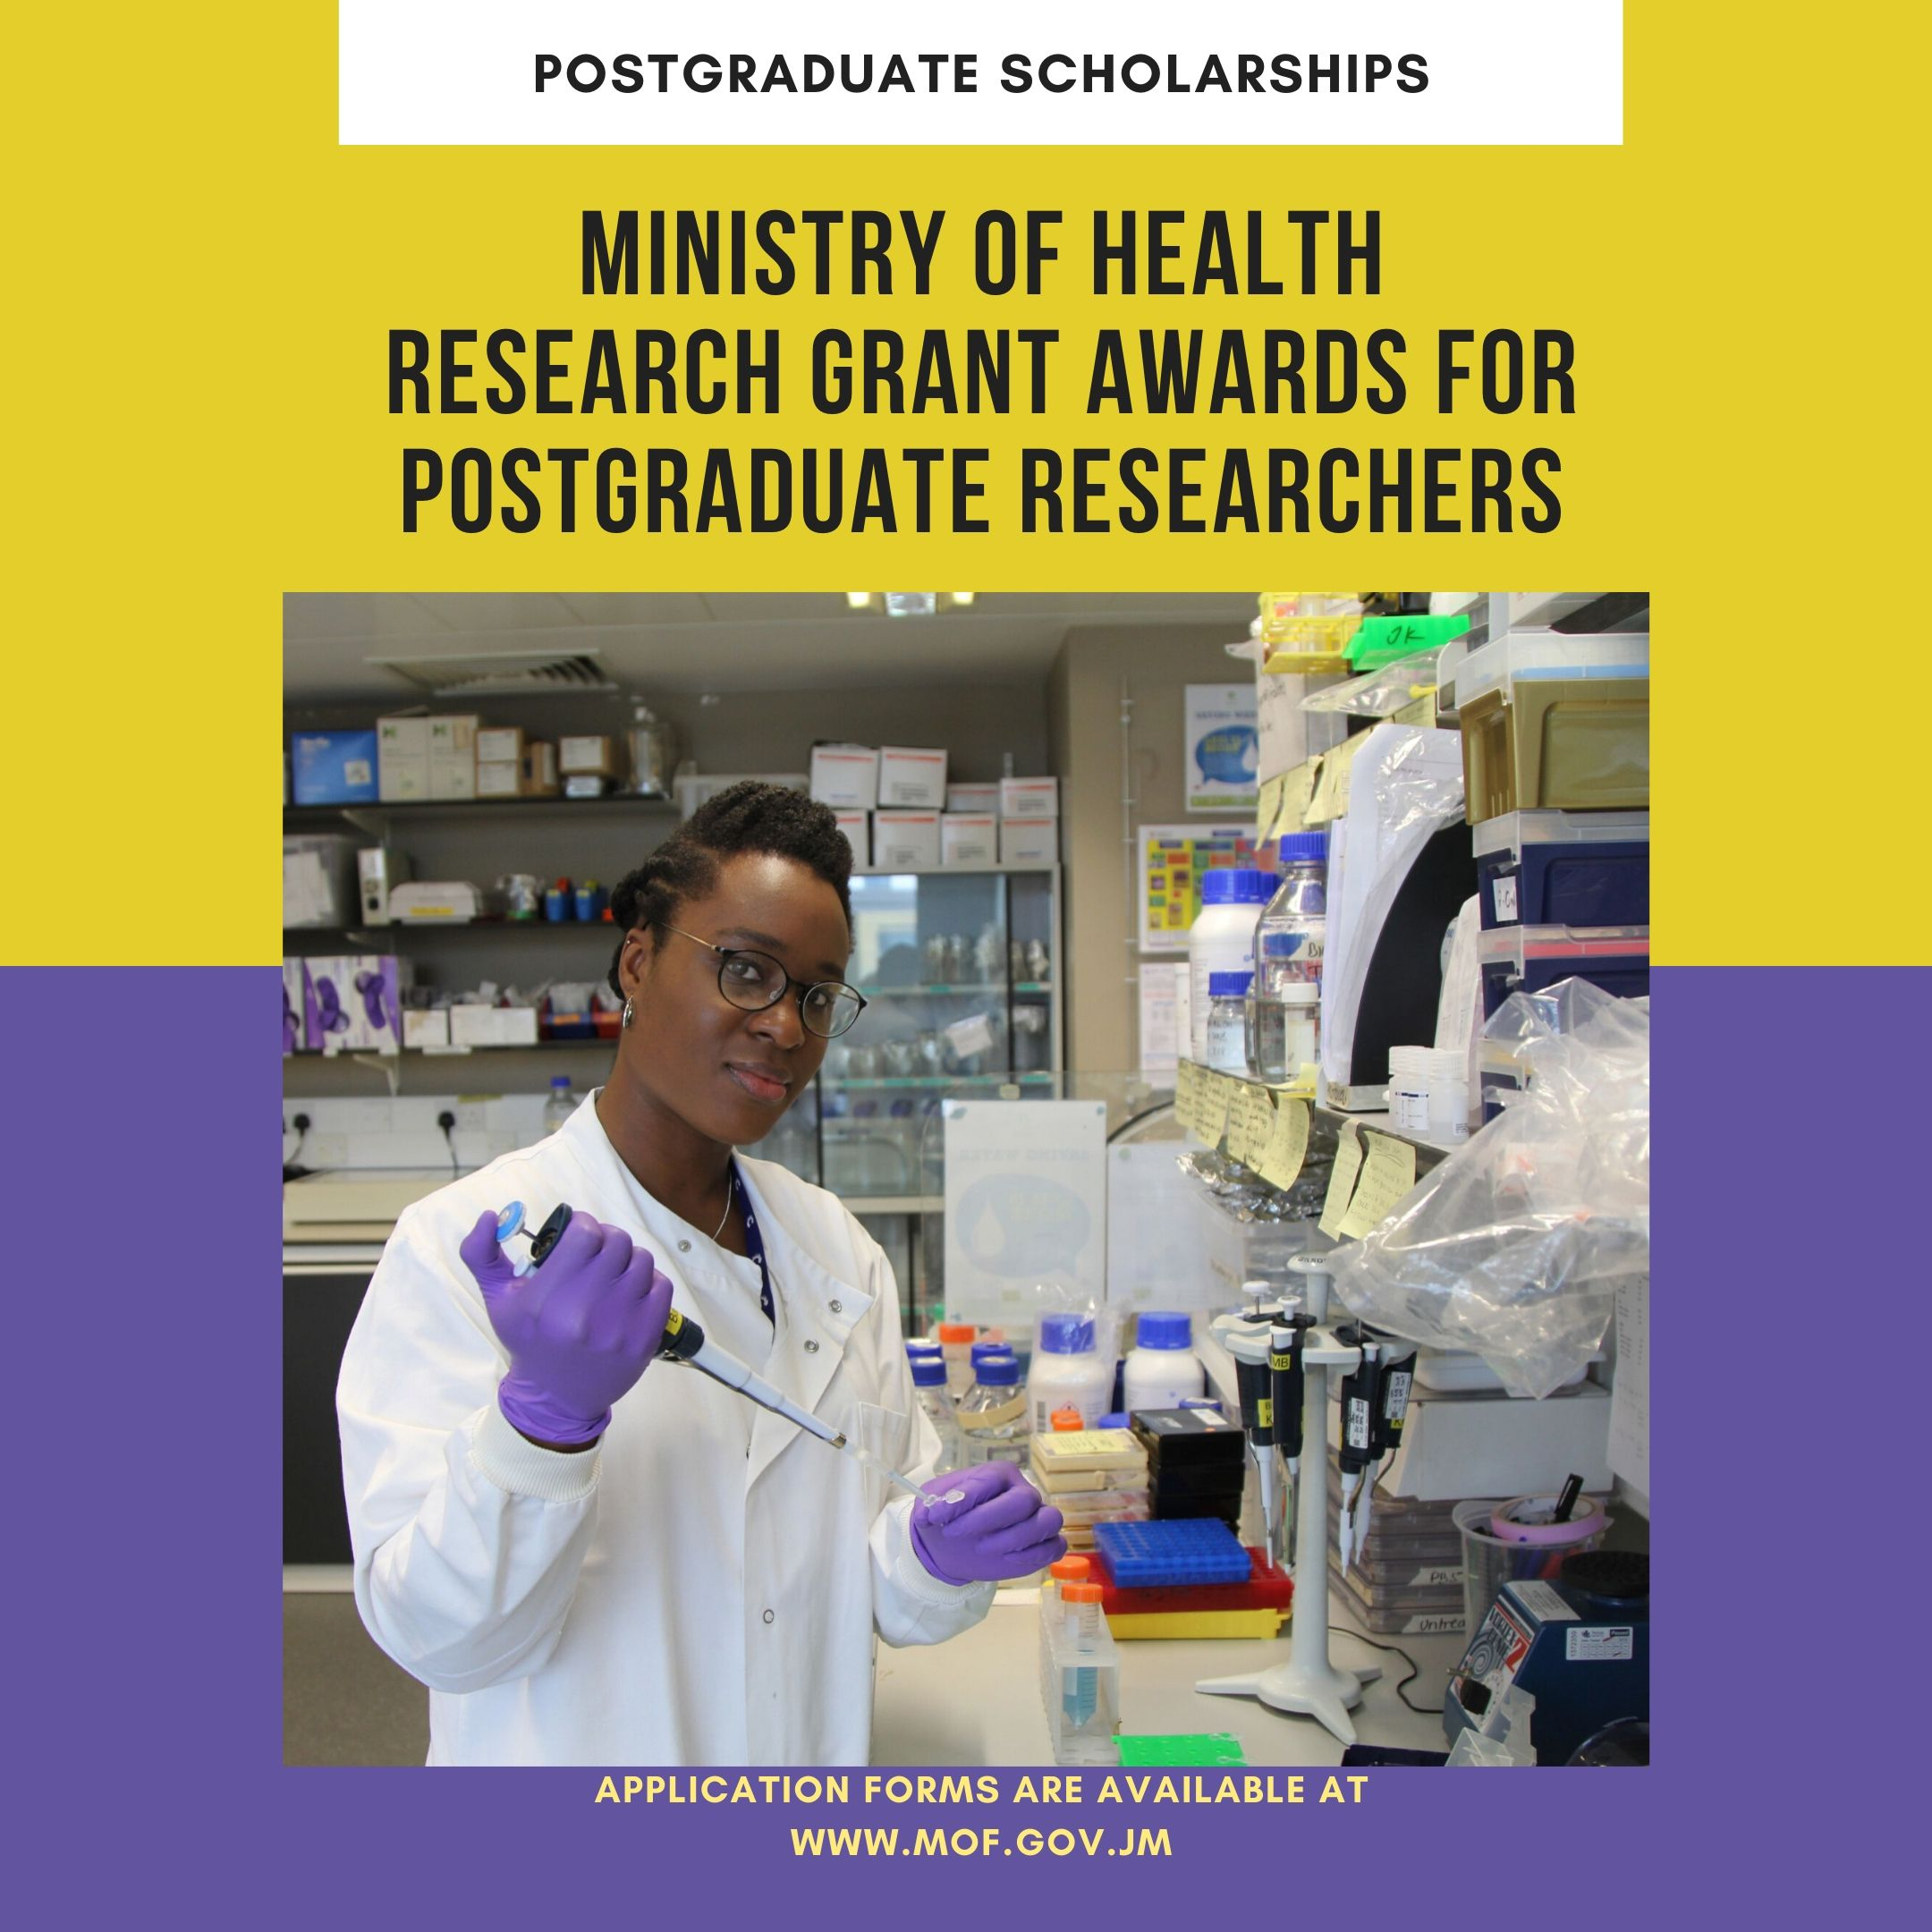 Apply for the Ministry of Health research grant awards for postgraduate researchers programme. 3 awards of J$1.5M each - including admin fees.